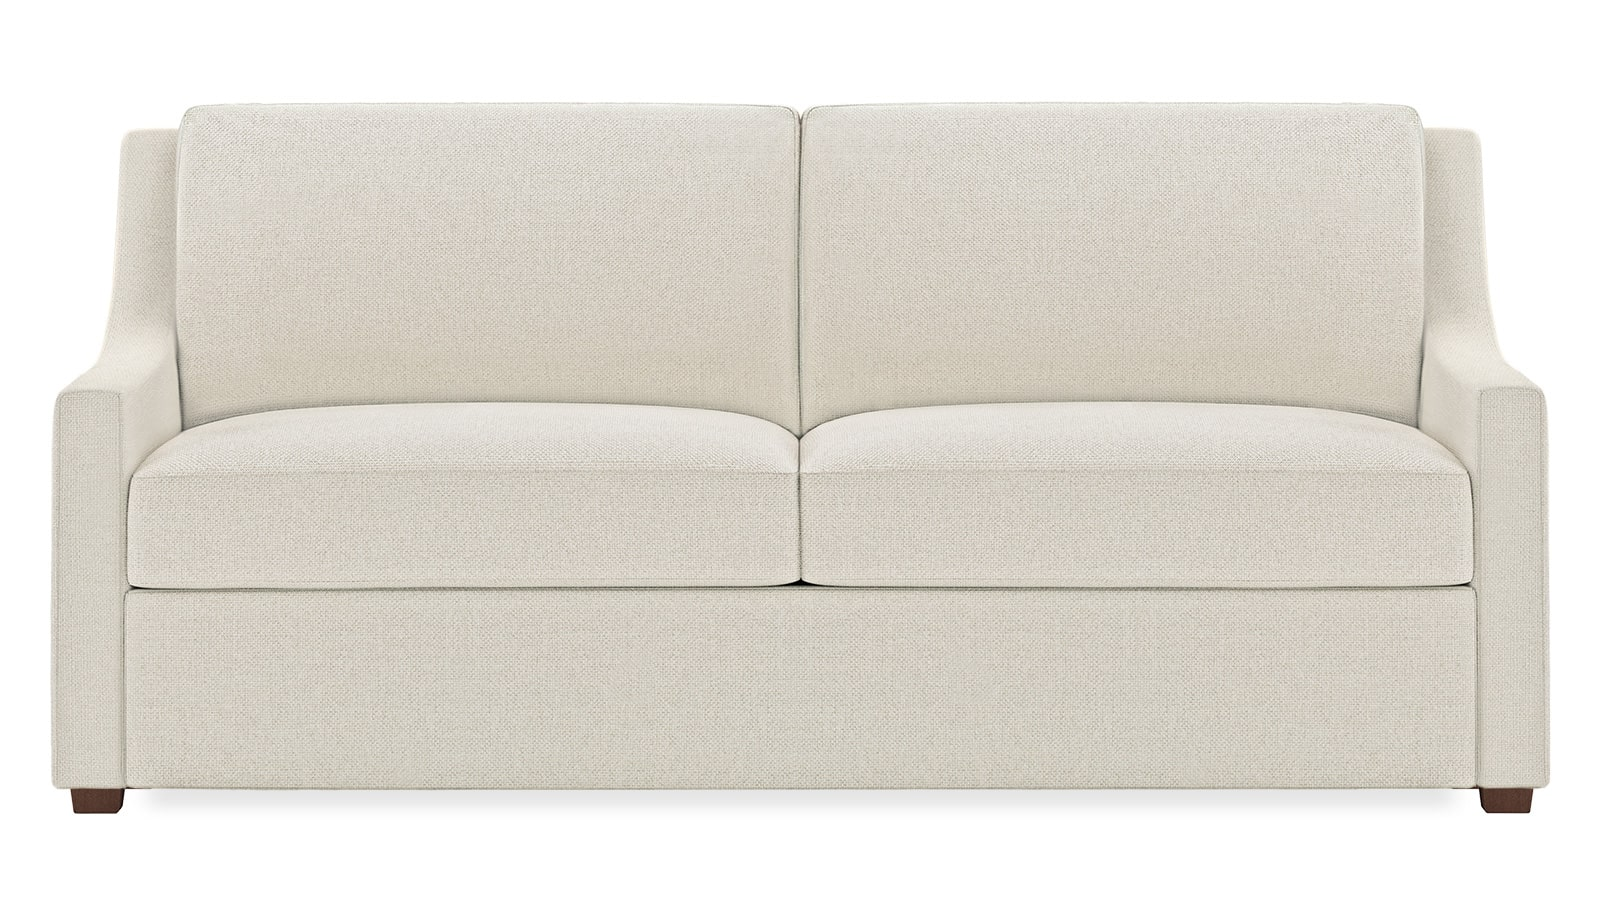 american leather perry sleeper sofa